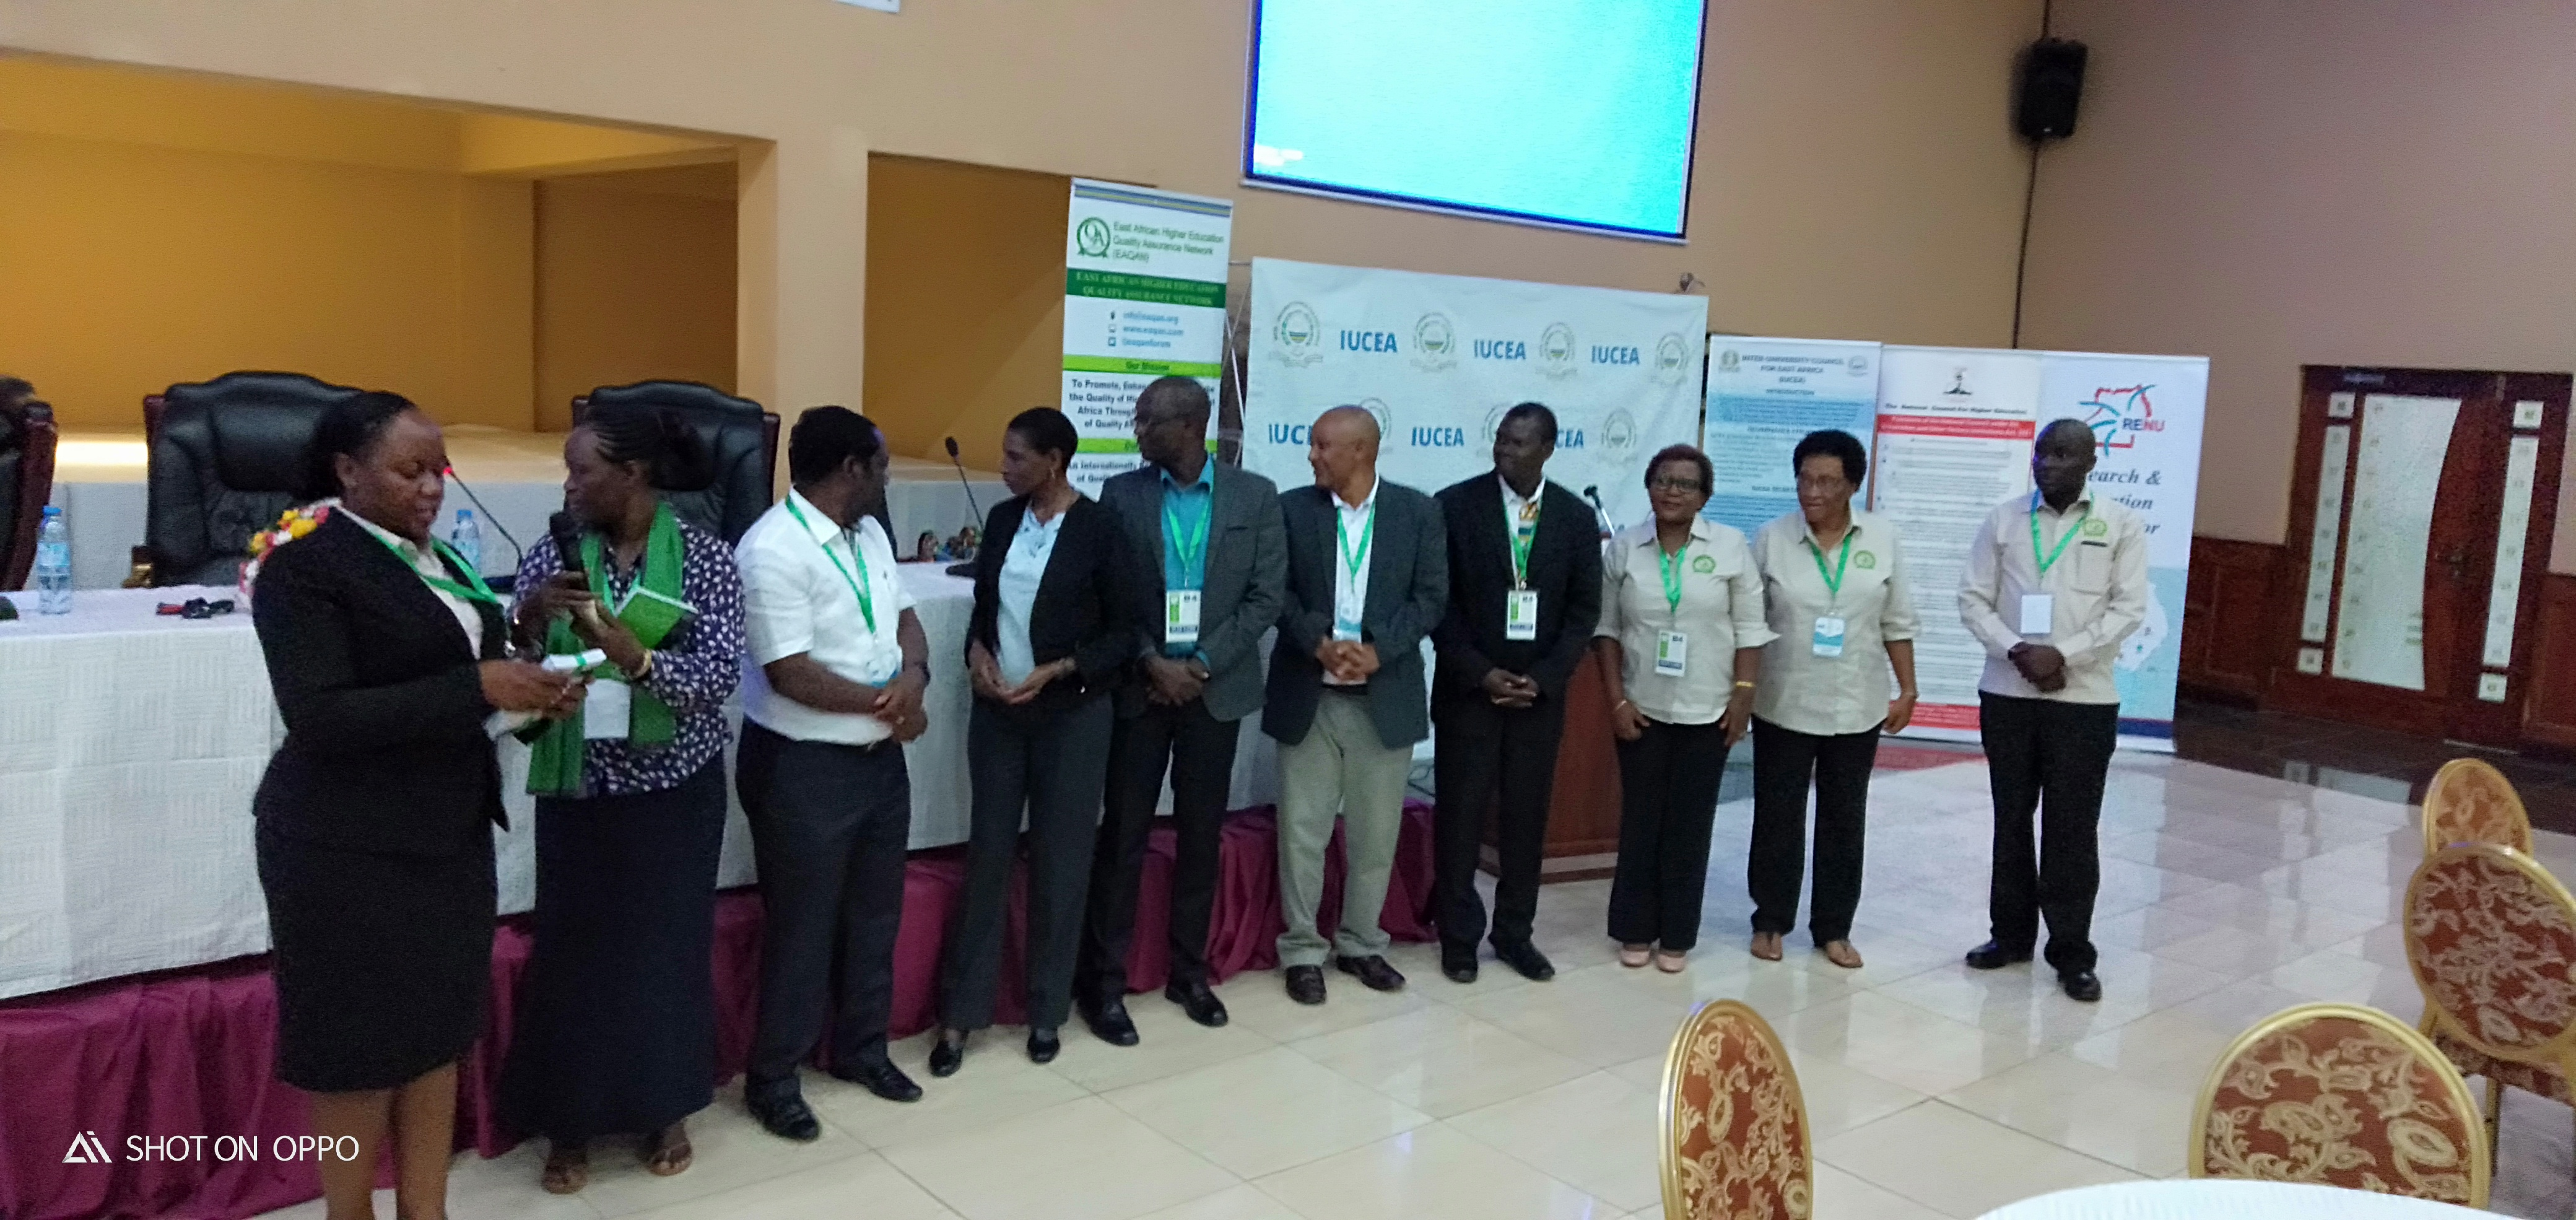 KIBU at the 9th East Africa Quality Assurance Network Forum